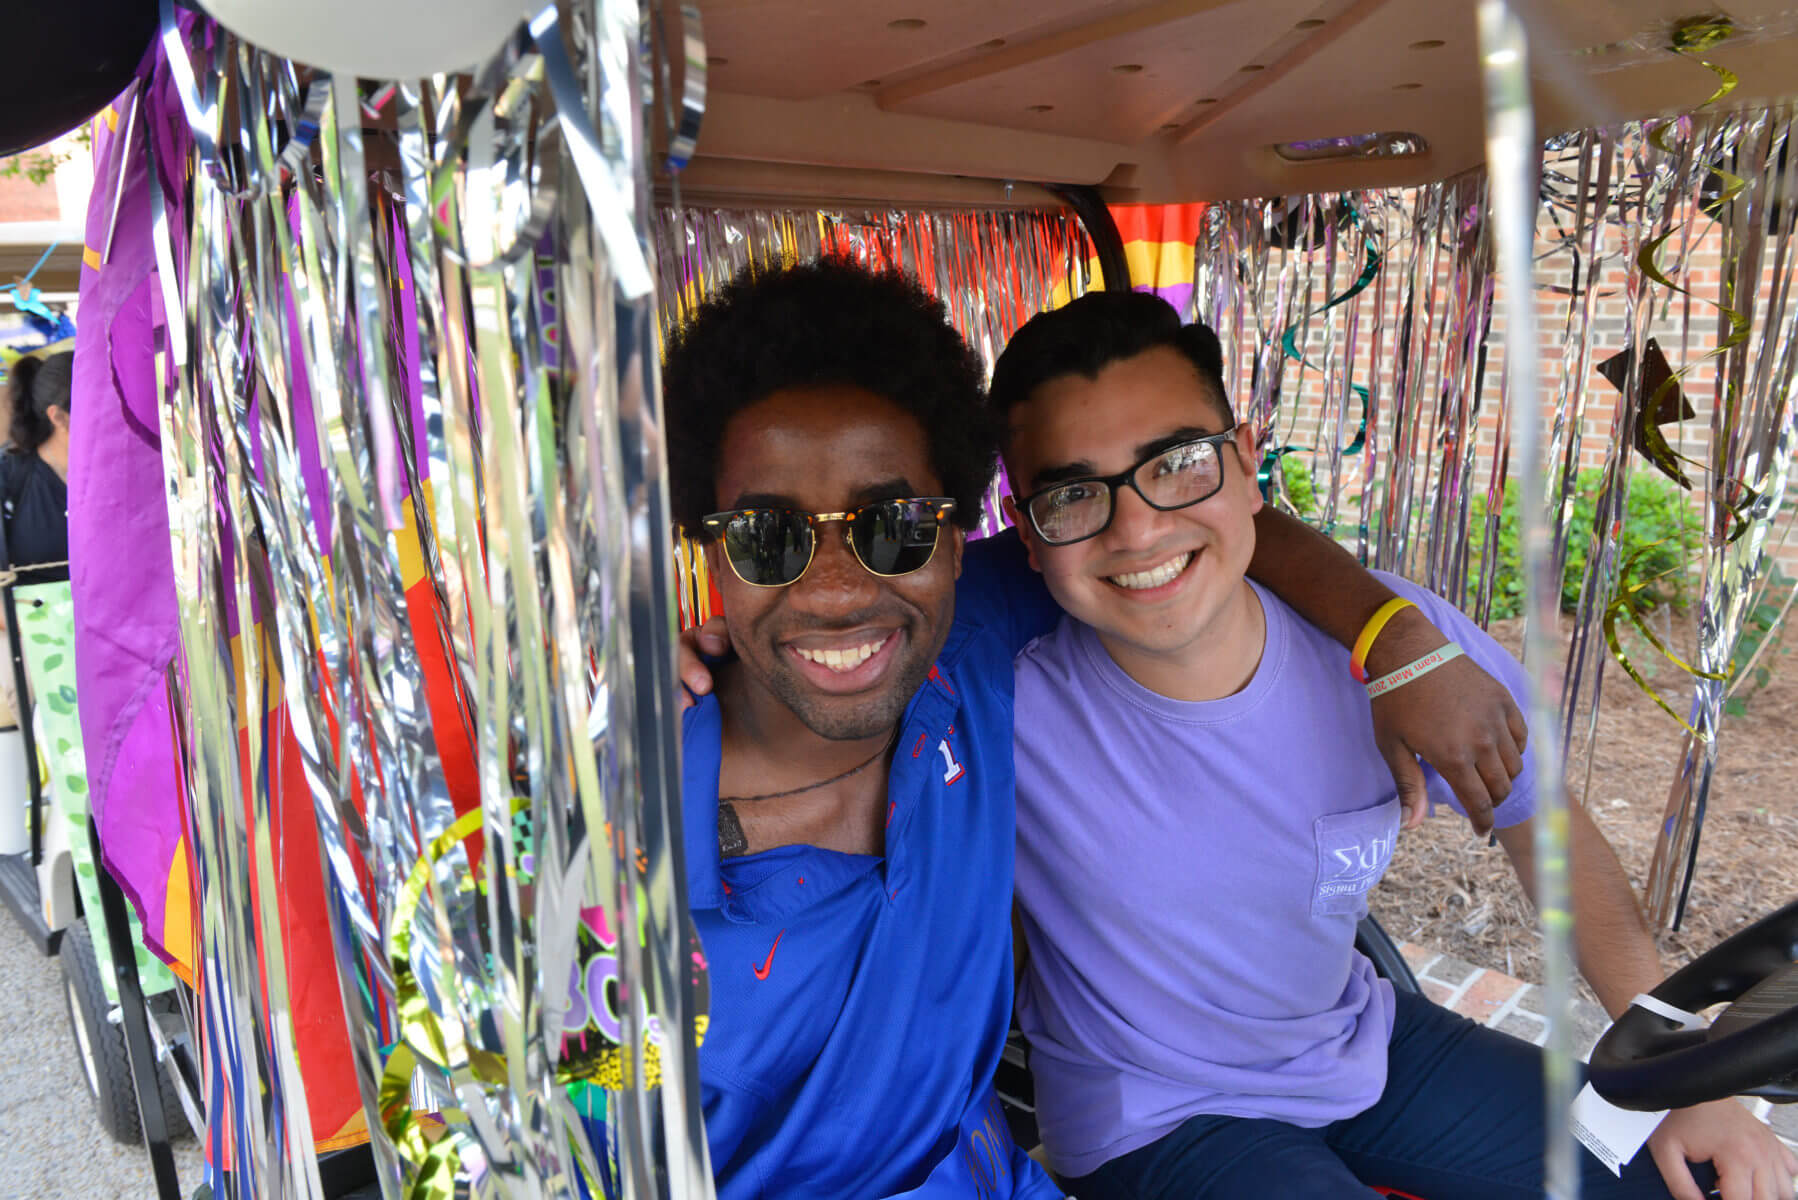 Two students pose during the golf cart parade